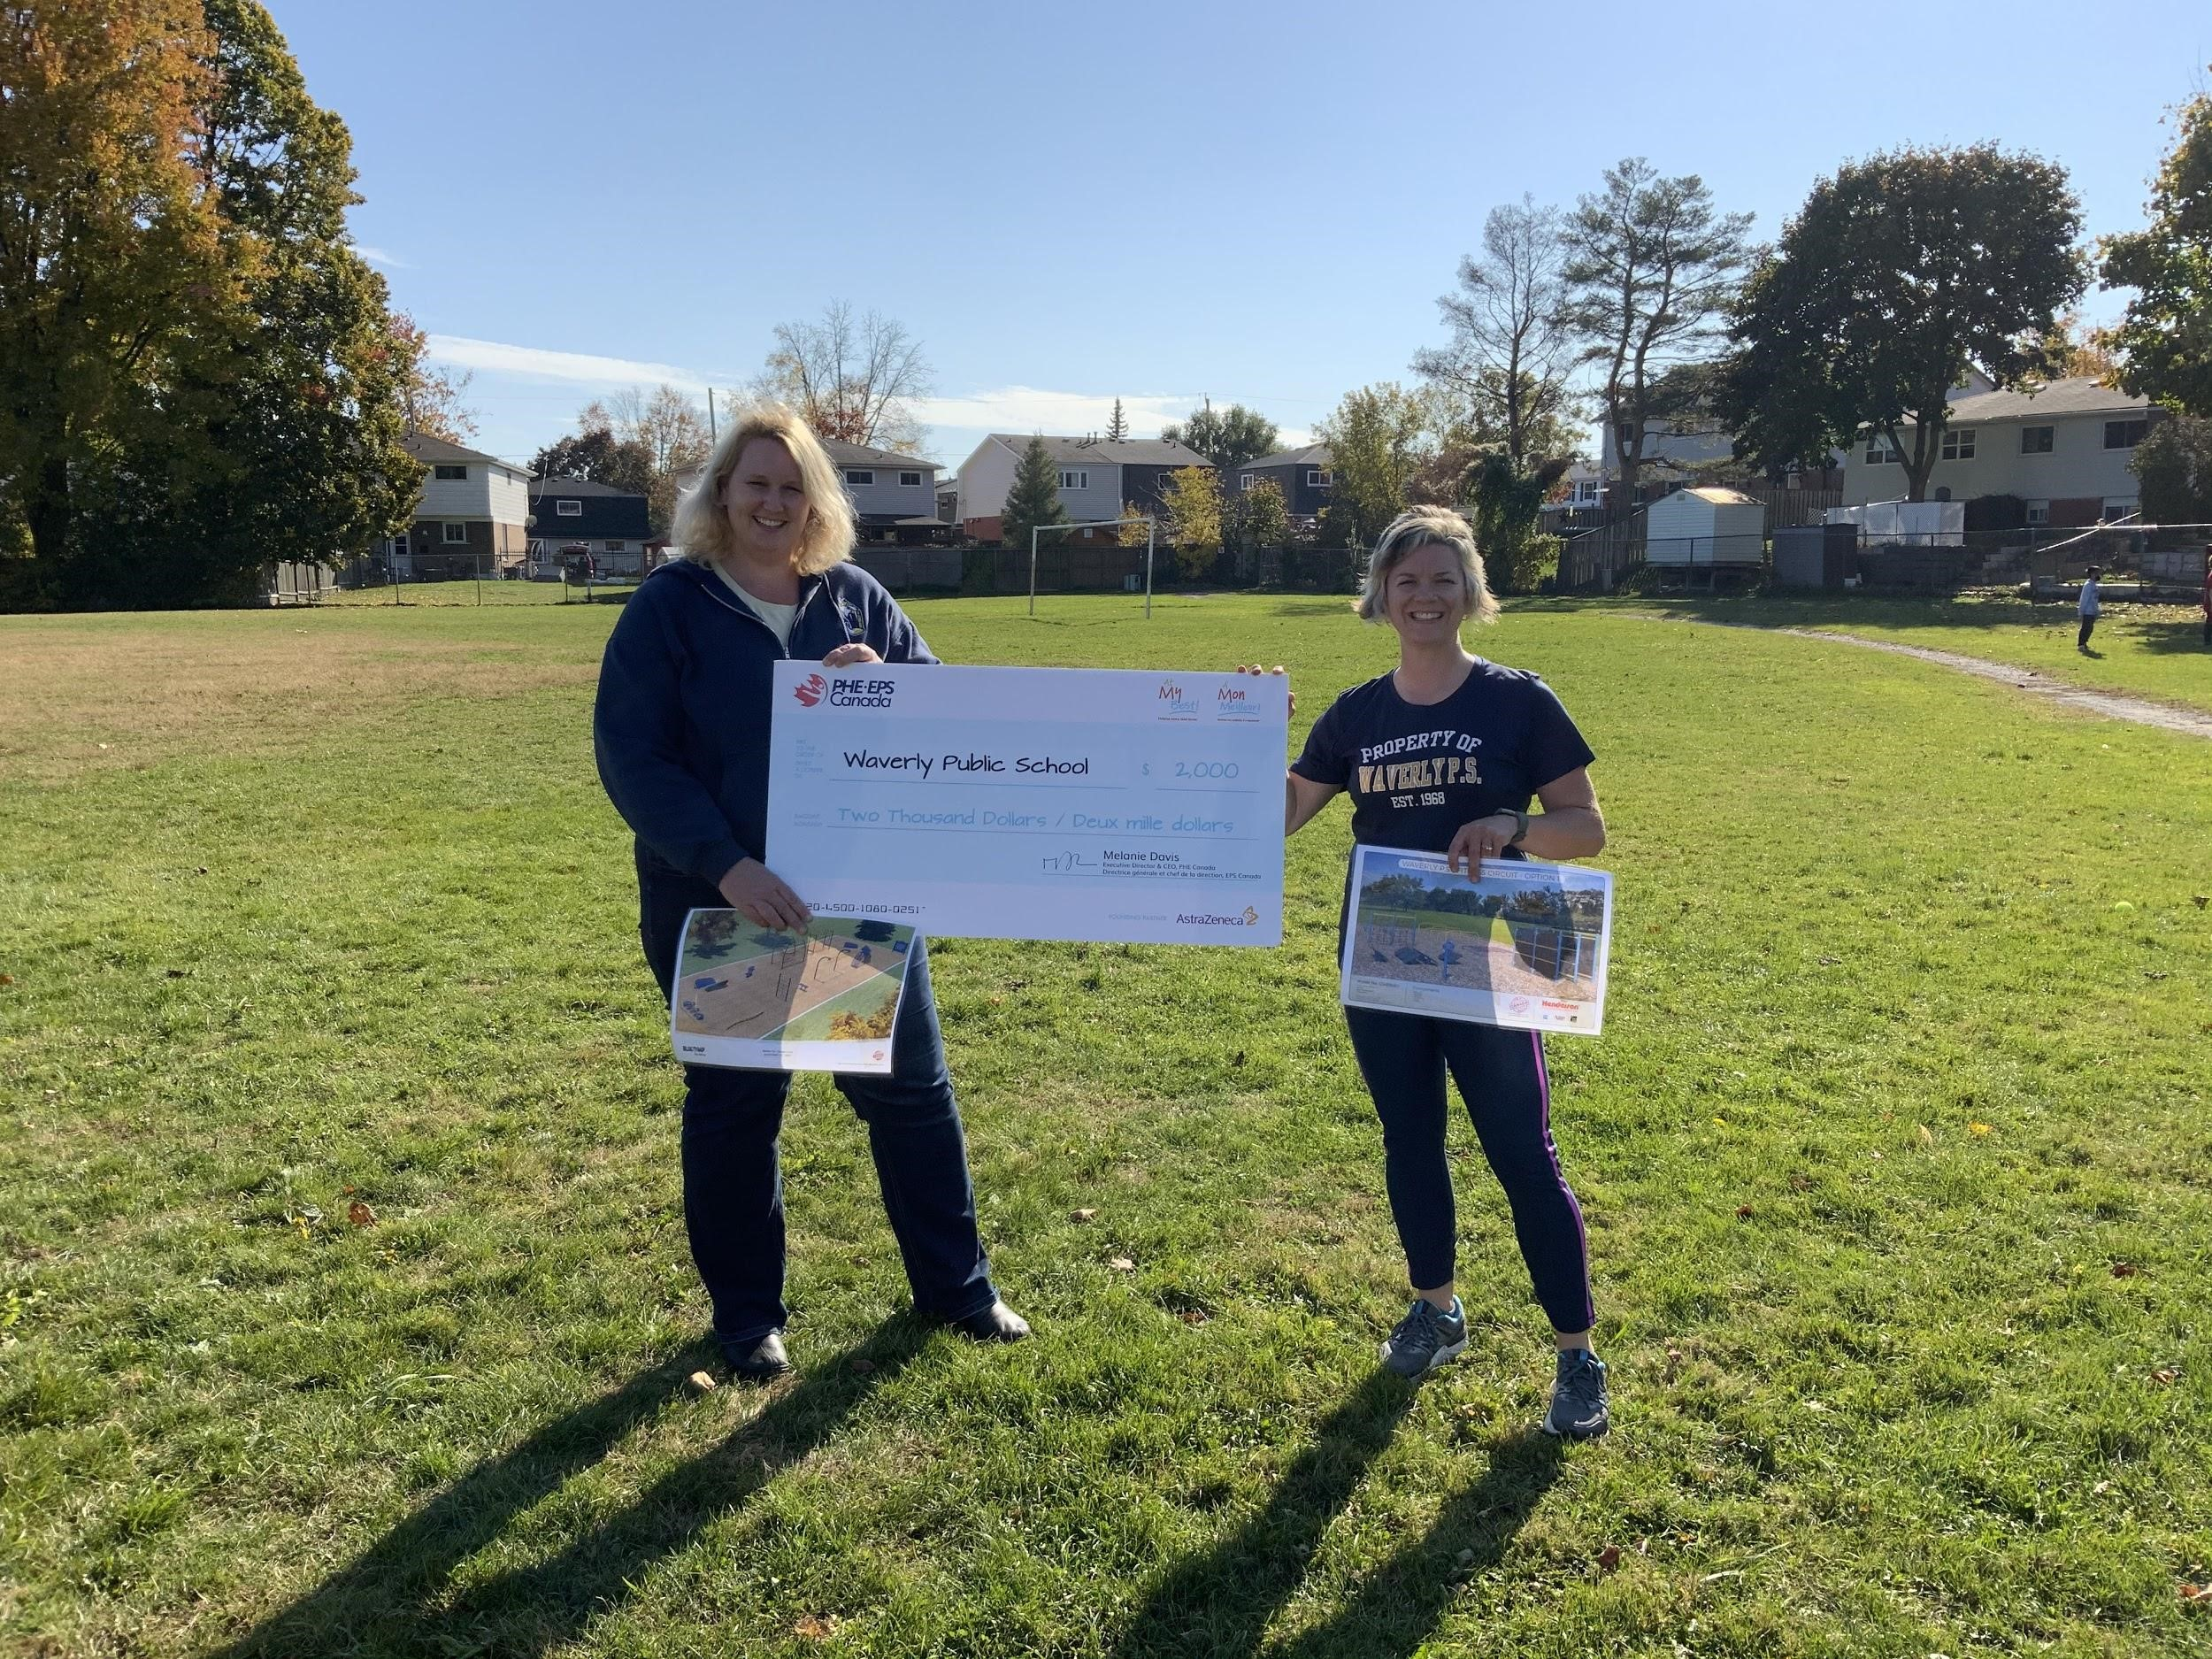 Waverly Public School Principal Amanda Chapman and Physical Education Teacher Sherri Parr with the $2000 grant check from At My Best.